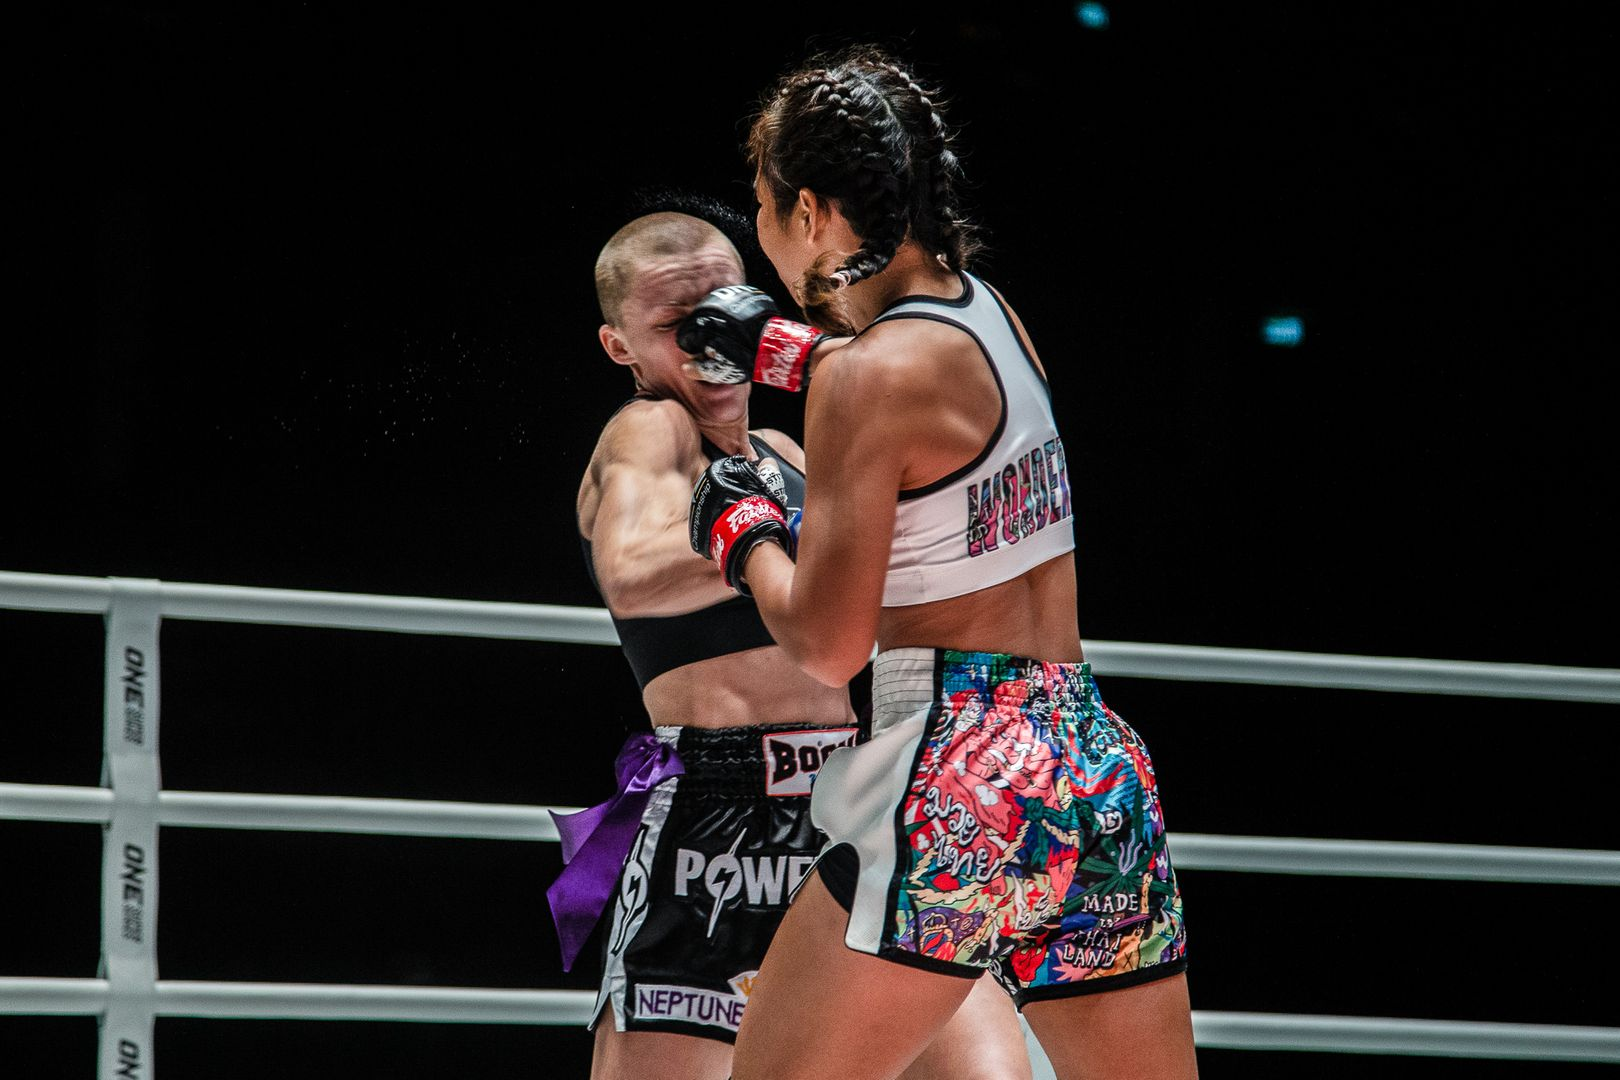 Wondergirl Fairtex fights Brooke Farrell in a Muay Thai bout at ONE: NO SURRENDER III